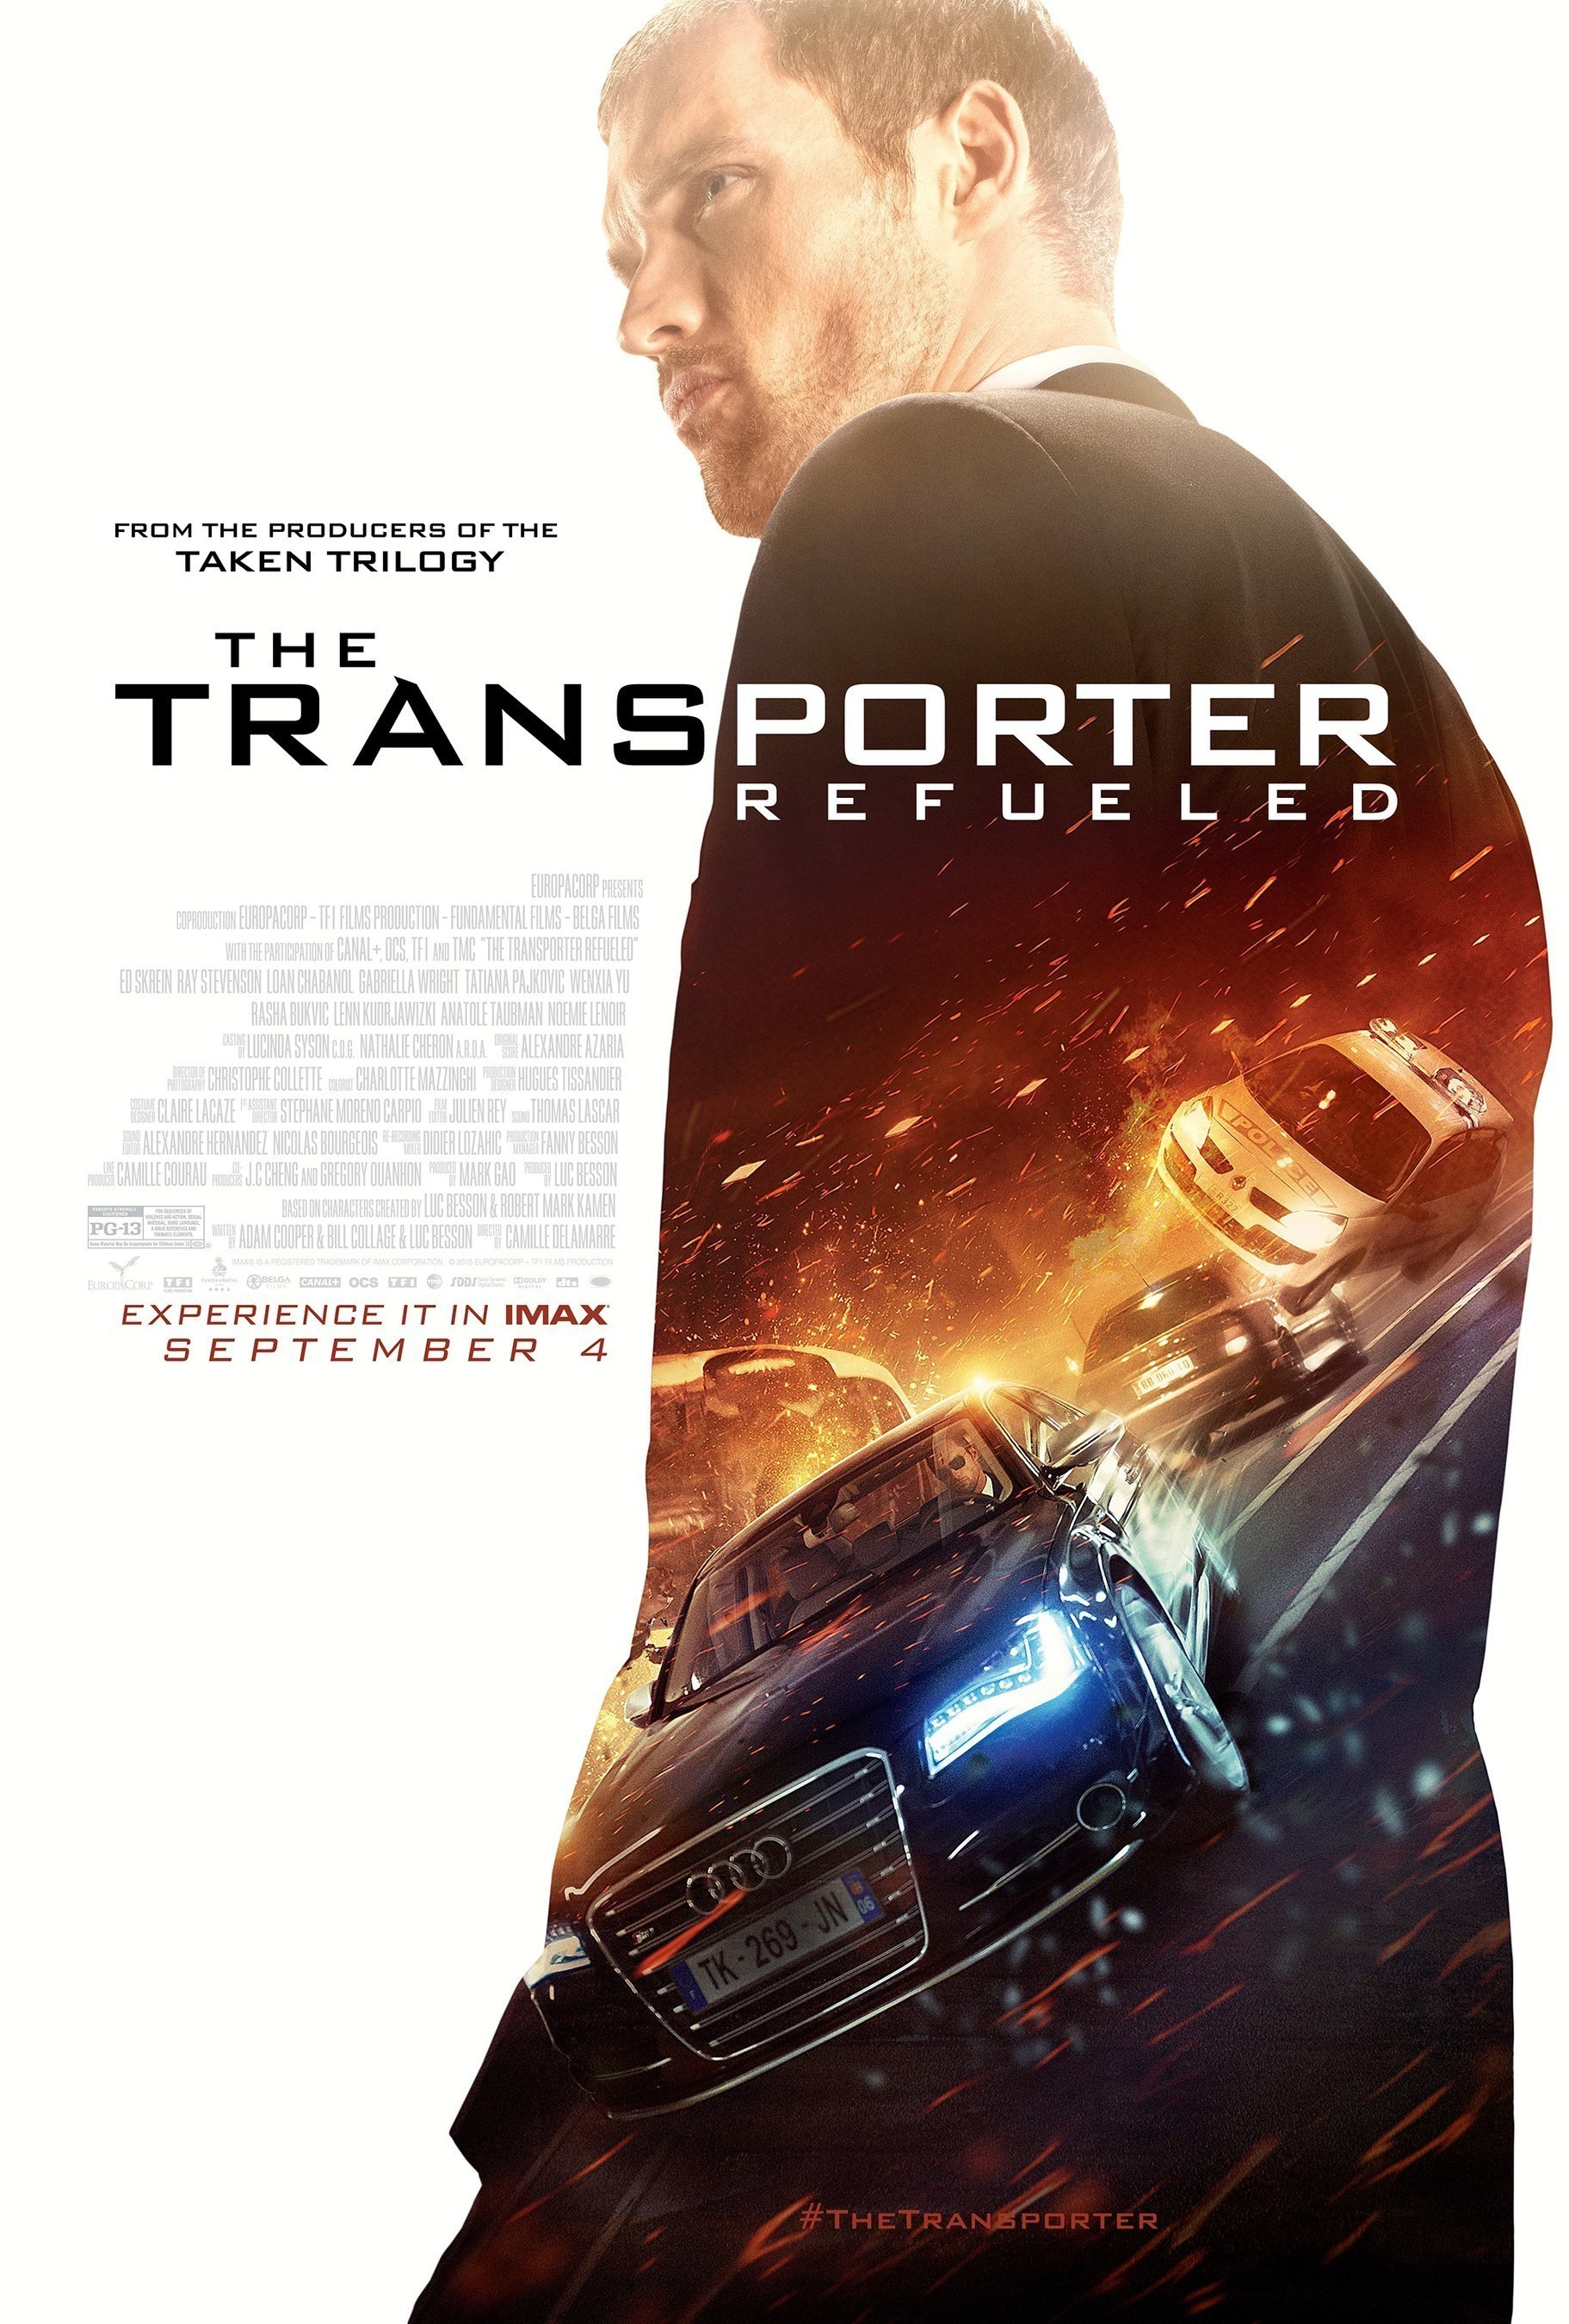 EuropaCorp's The Transporter Refueled To Be Released In Select IMAX' Theatres Globally Beginning September 4